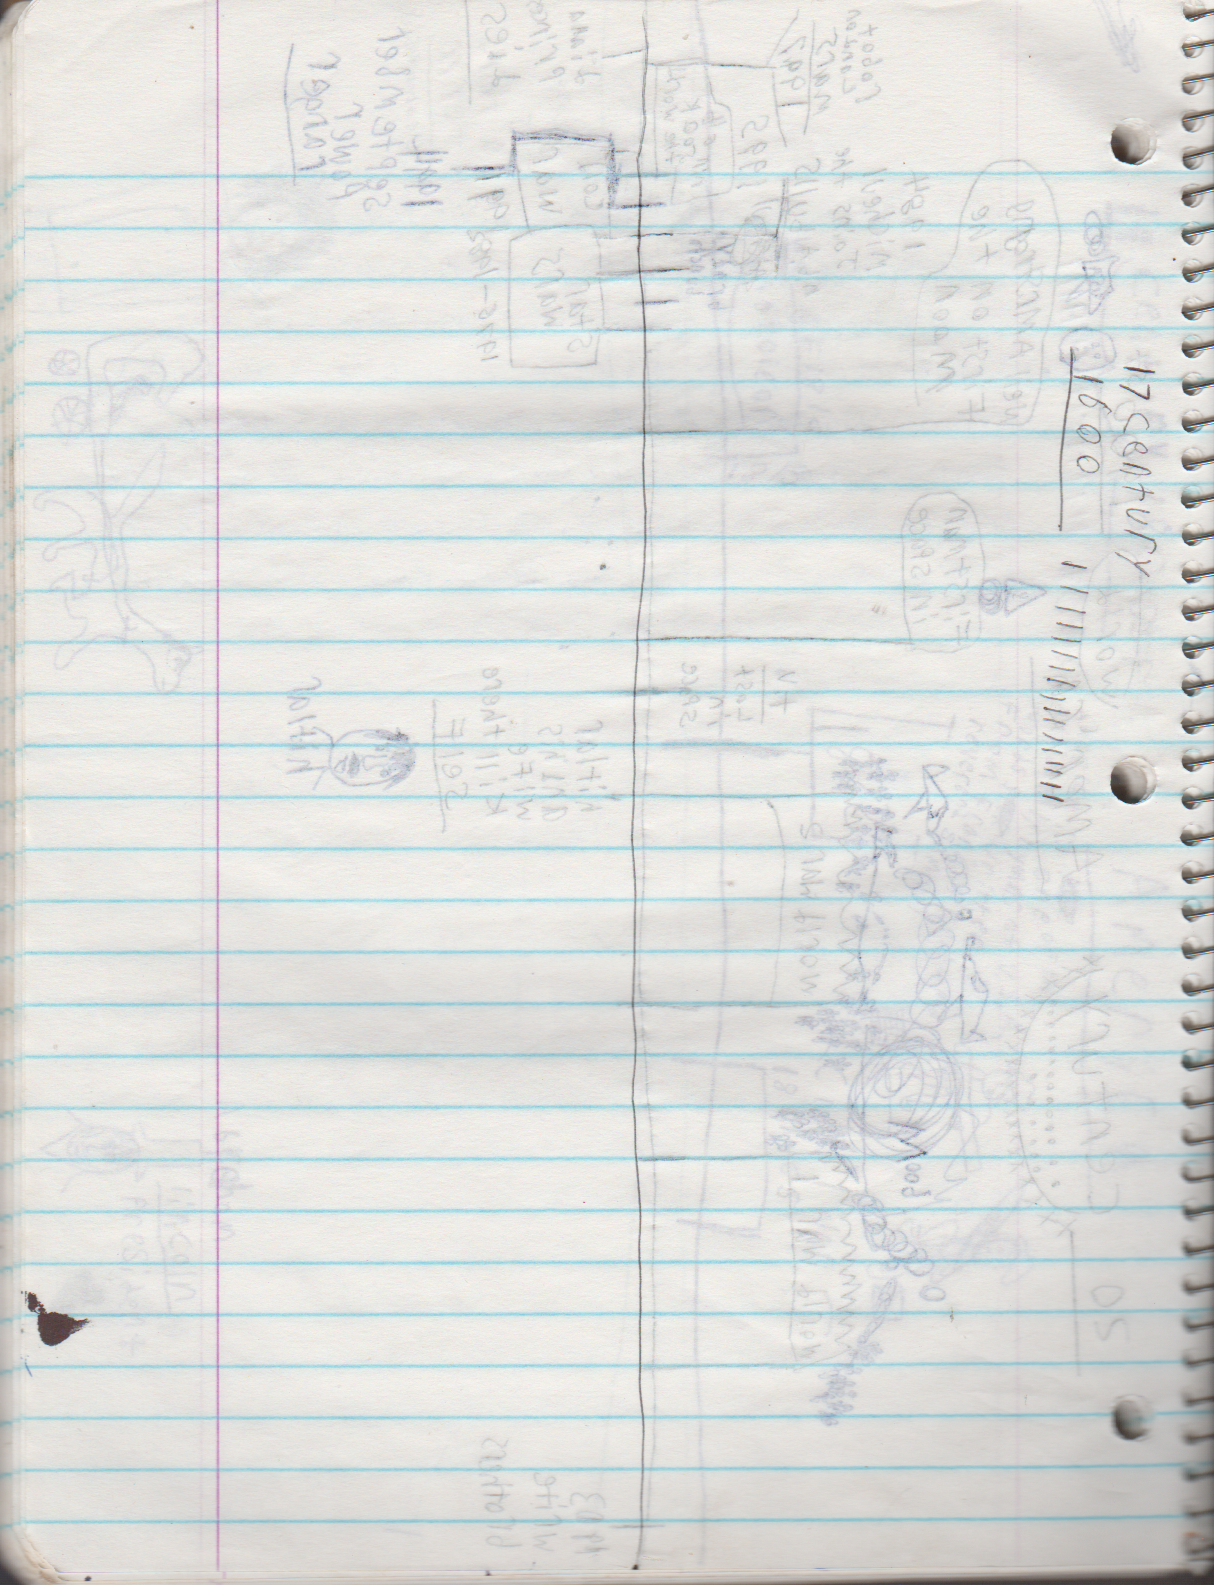 1996-08-18 - Saturday - 11 yr old Joey Arnold's School Book, dates through to 1998 apx, mostly 96, Writings, Drawings, Etc-091.png